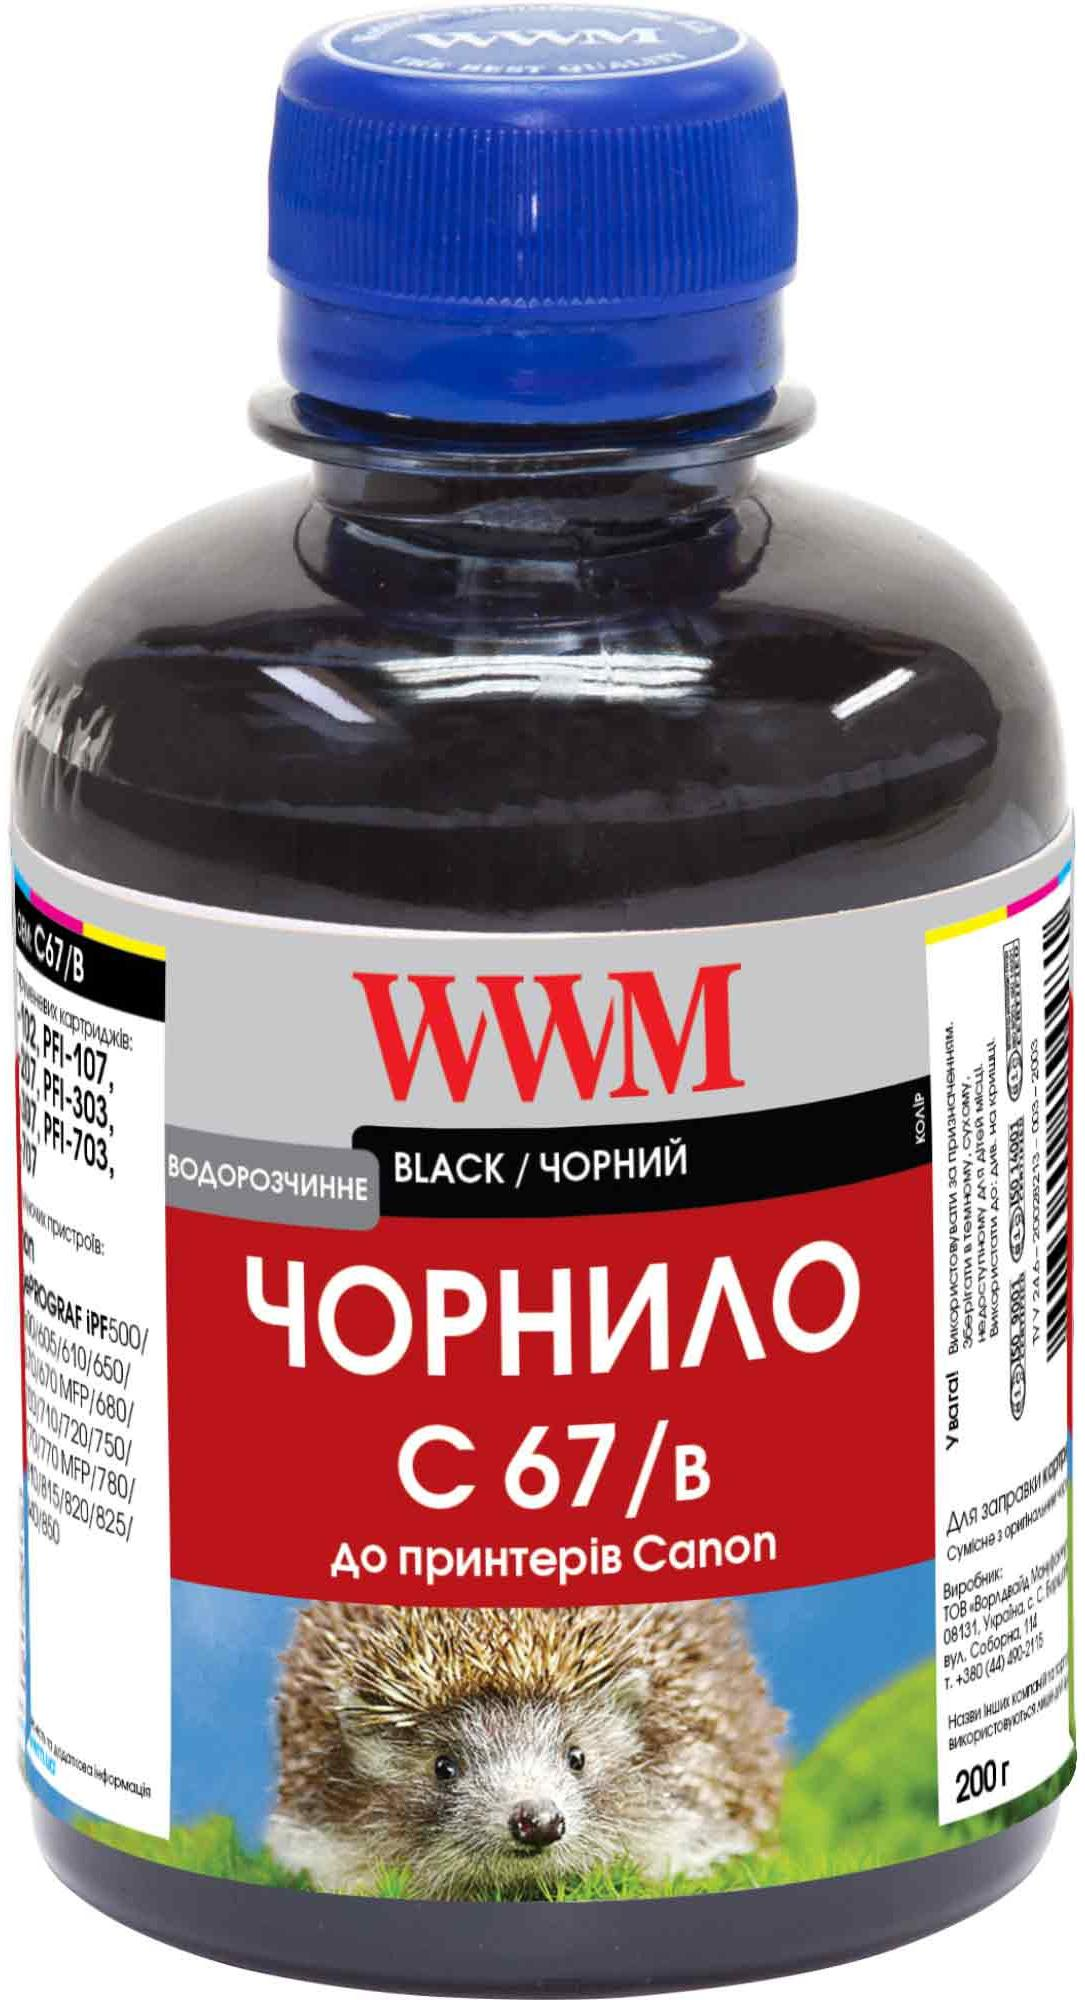 Купить Чорнило WWM for Canon IPF-107Bk - Black 200g (C67/B)